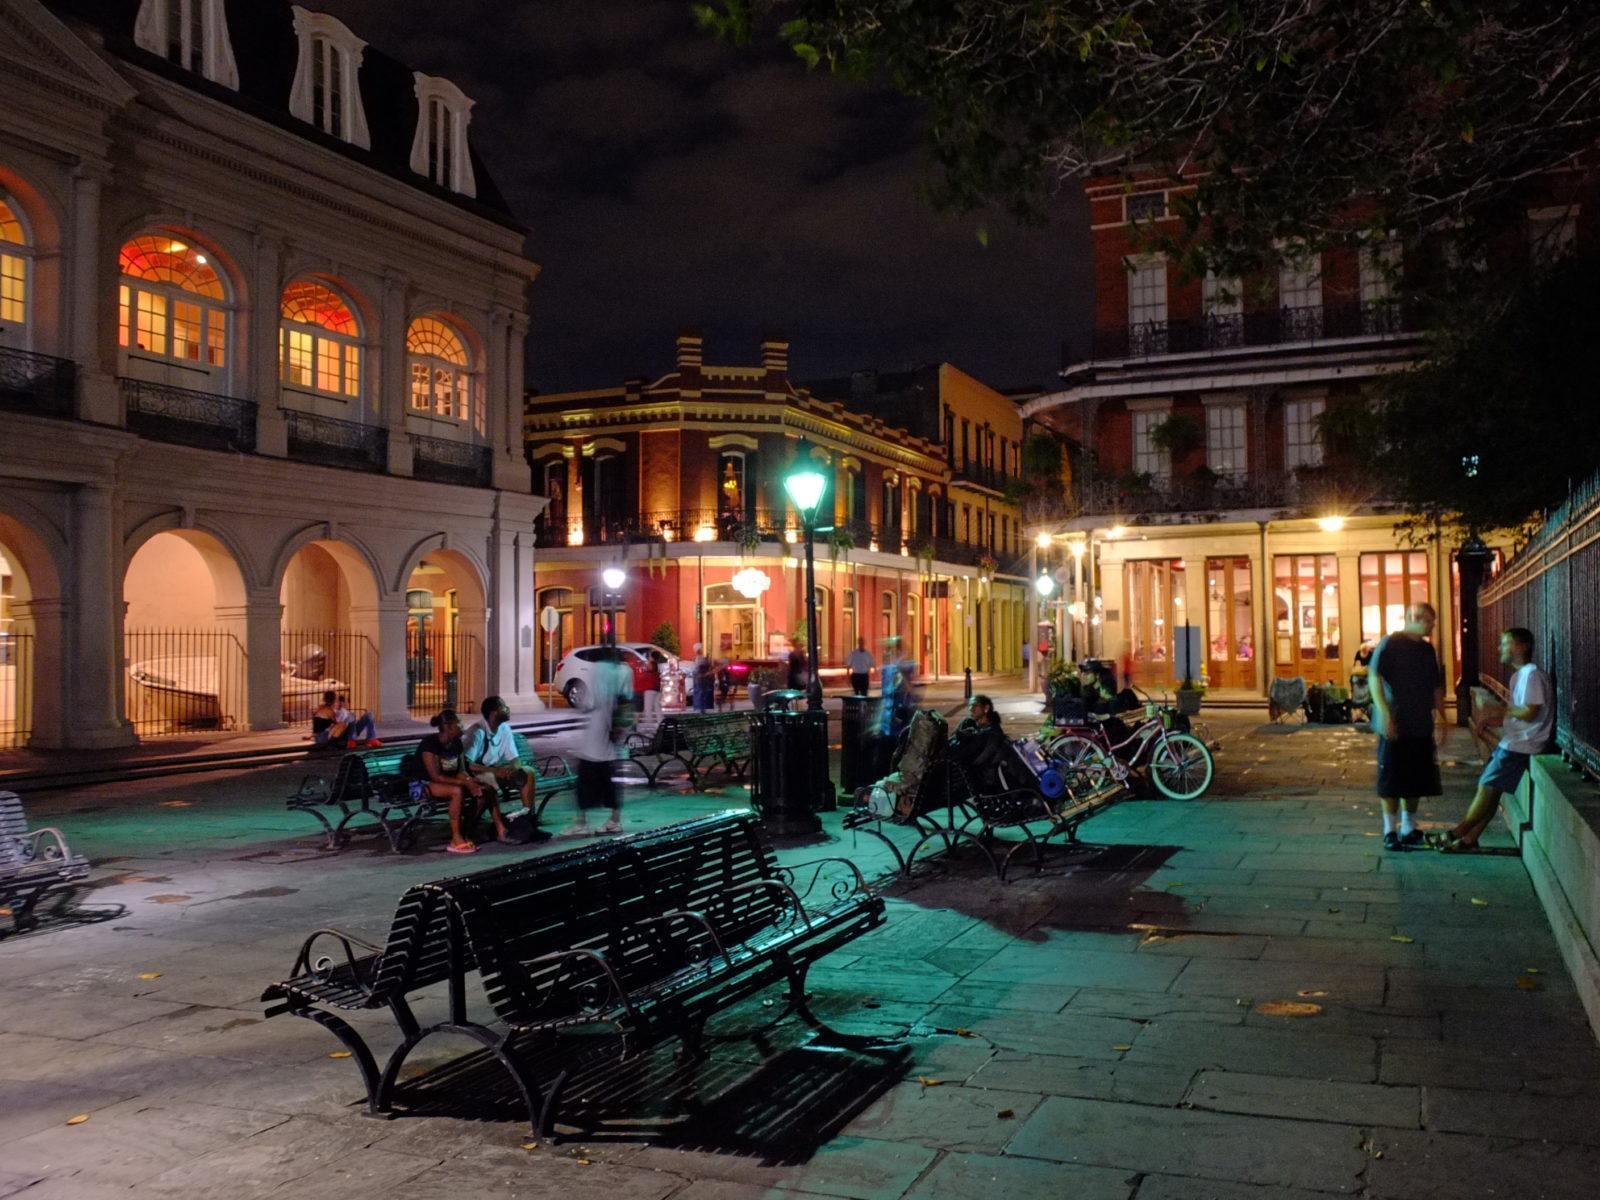 Top 7 Things to Do in New Orleans1